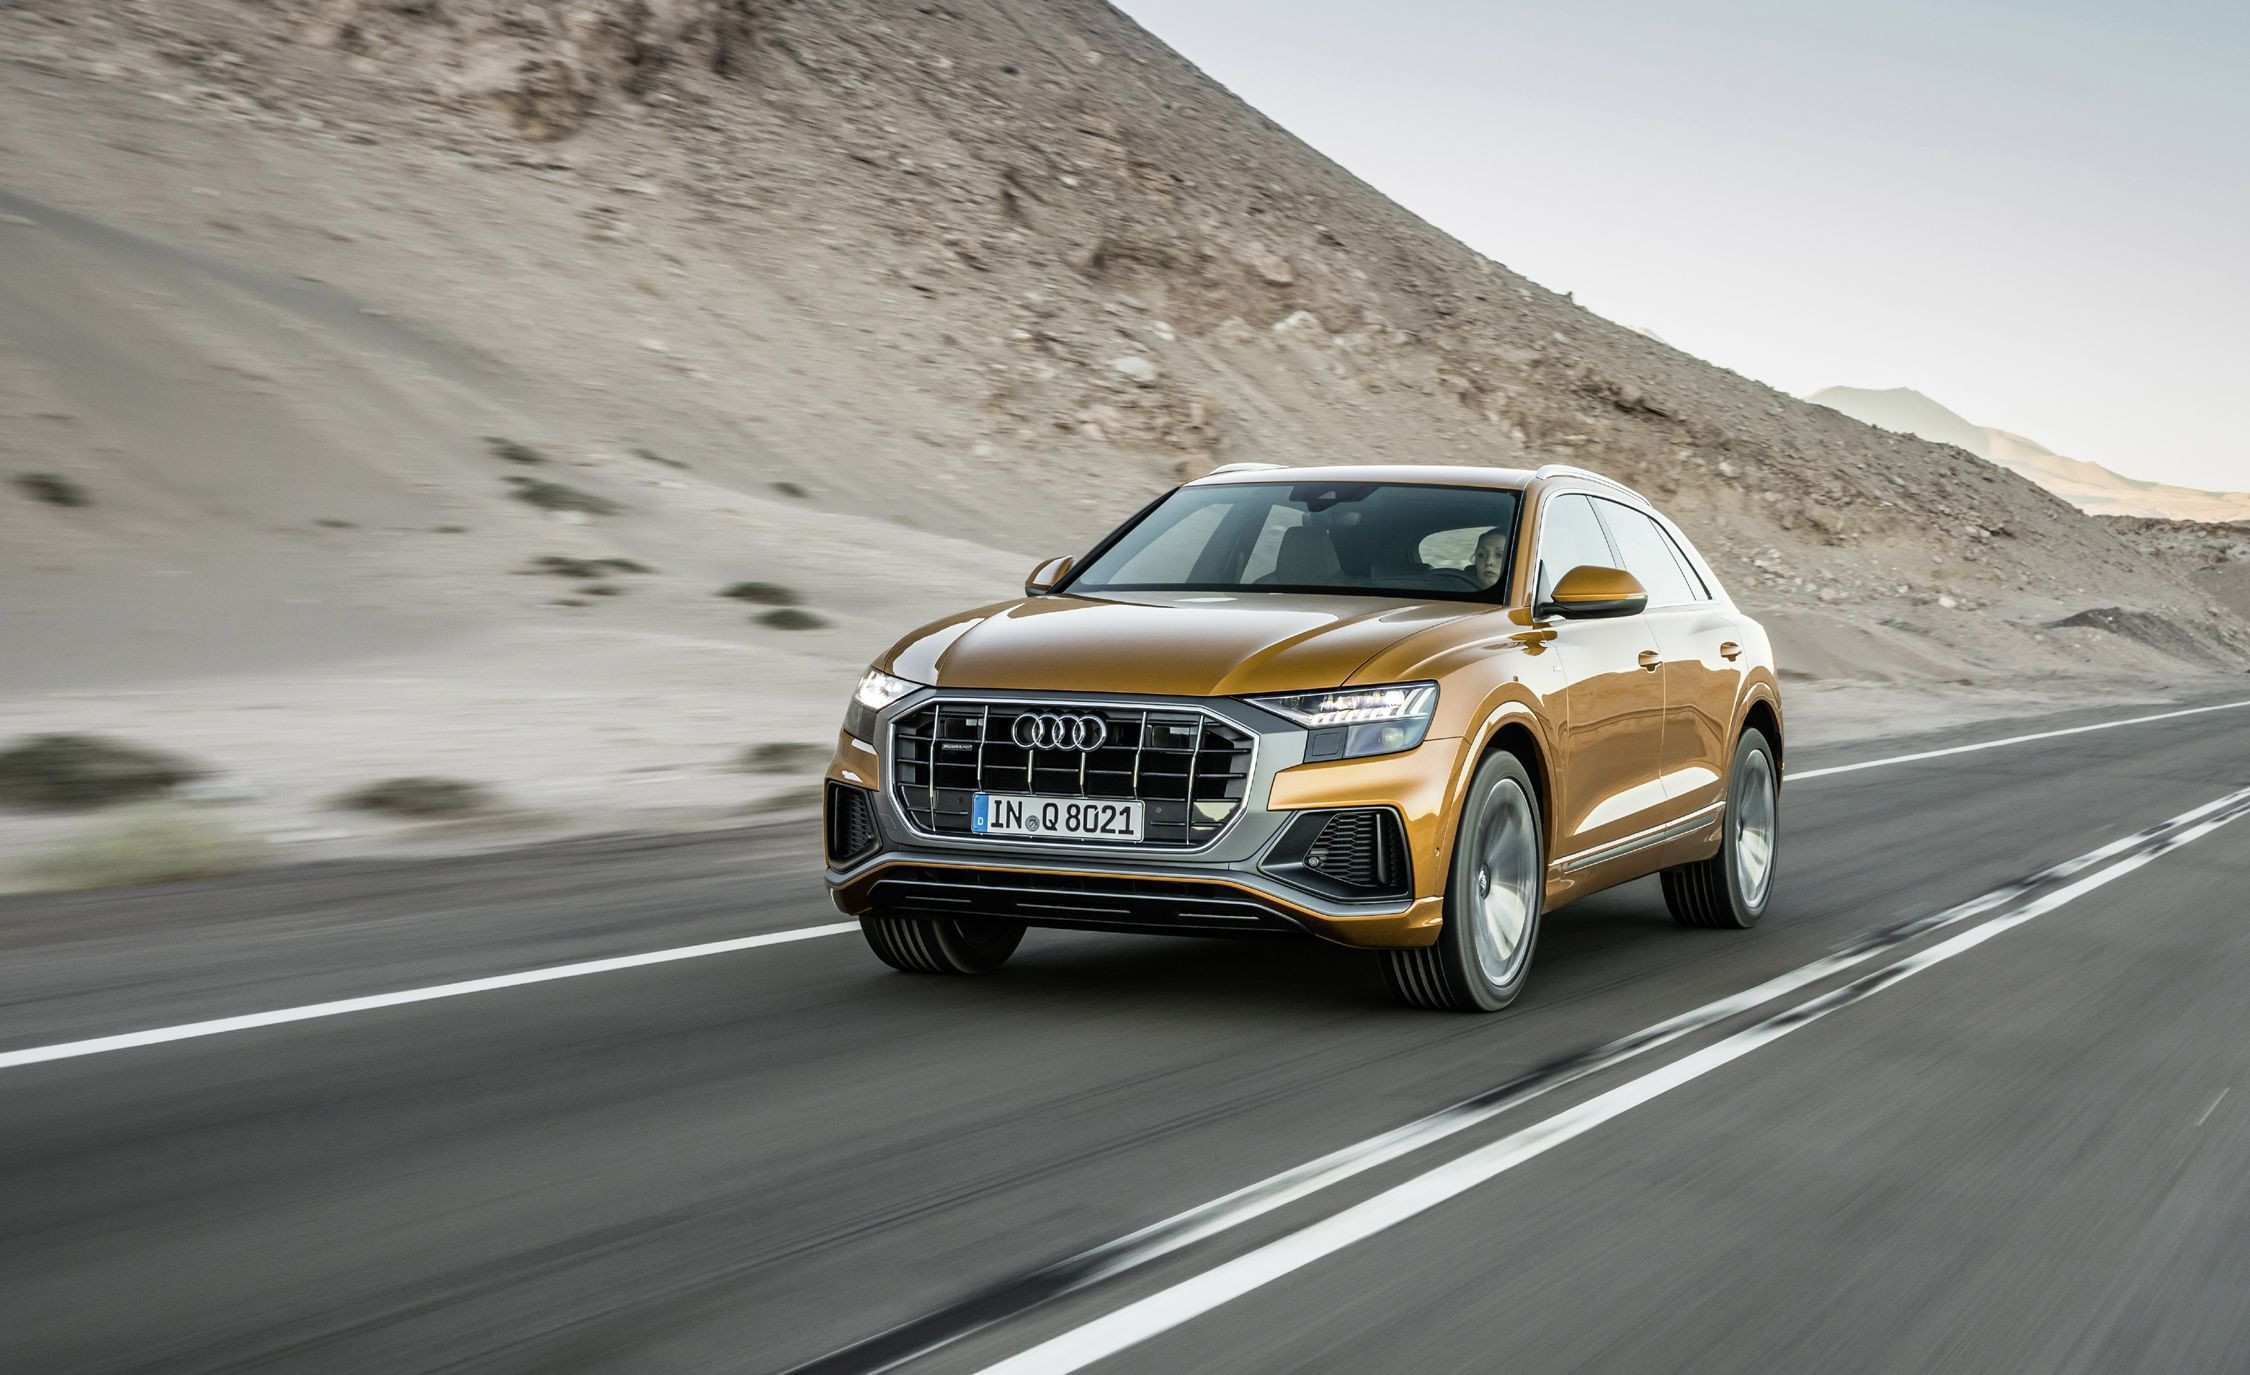 74 New Audi Sq5 2019 Order Guide New Release Price by Audi Sq5 2019 Order Guide New Release